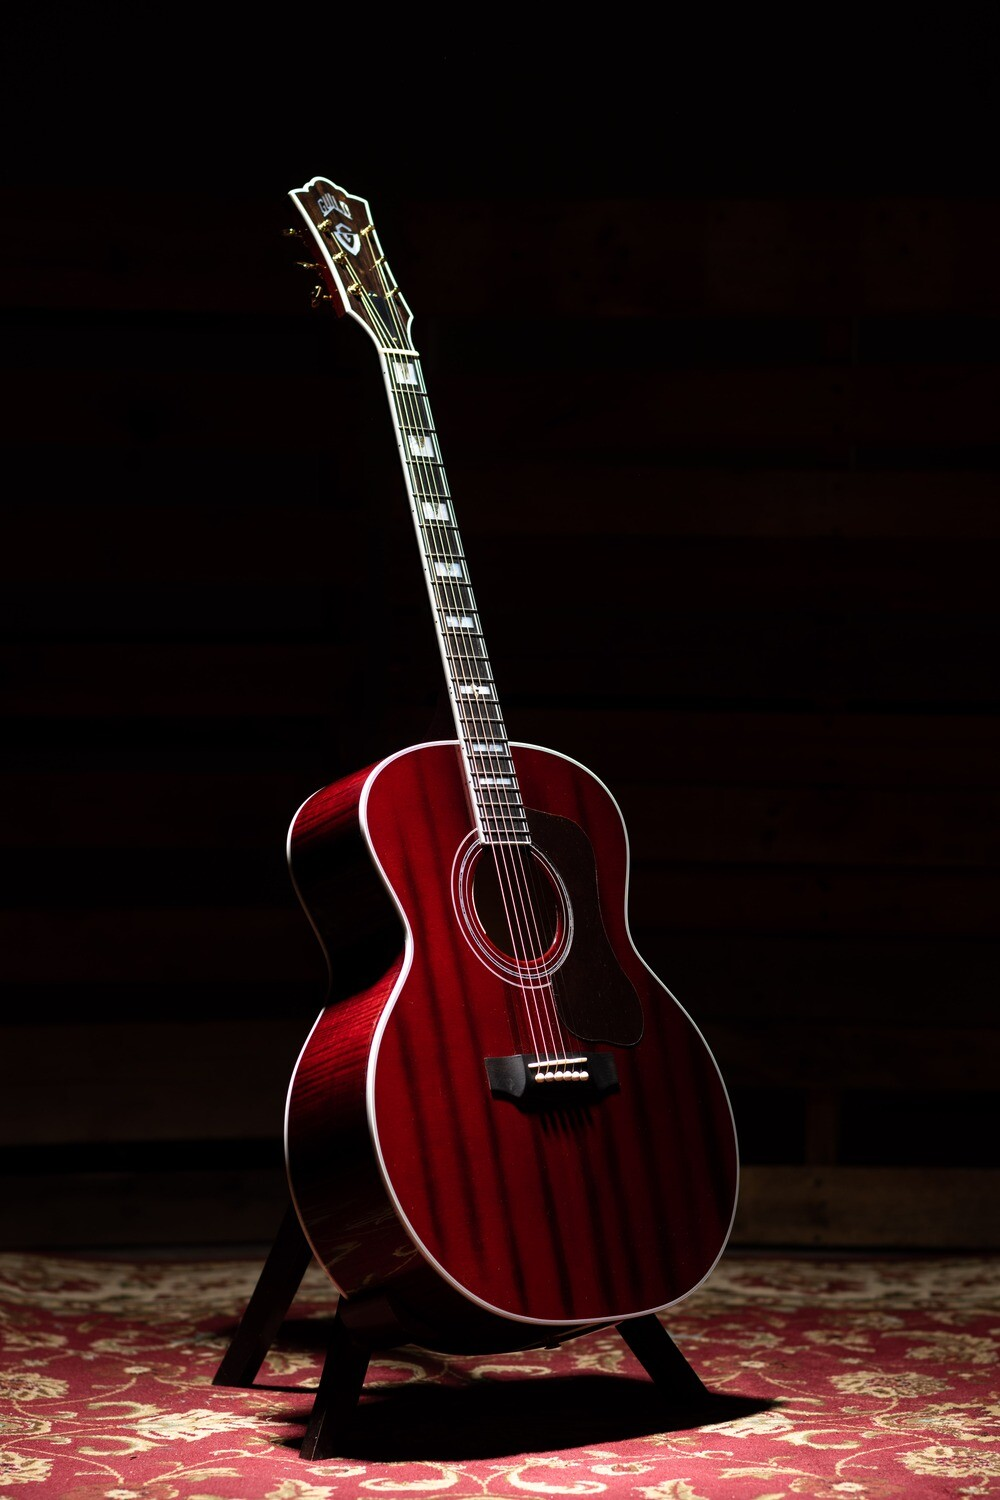 Guild F-55E Oxblood - GSR - All Solid - Sitka Spruce top, Maple Back/Sides - Made in the USA - 2020